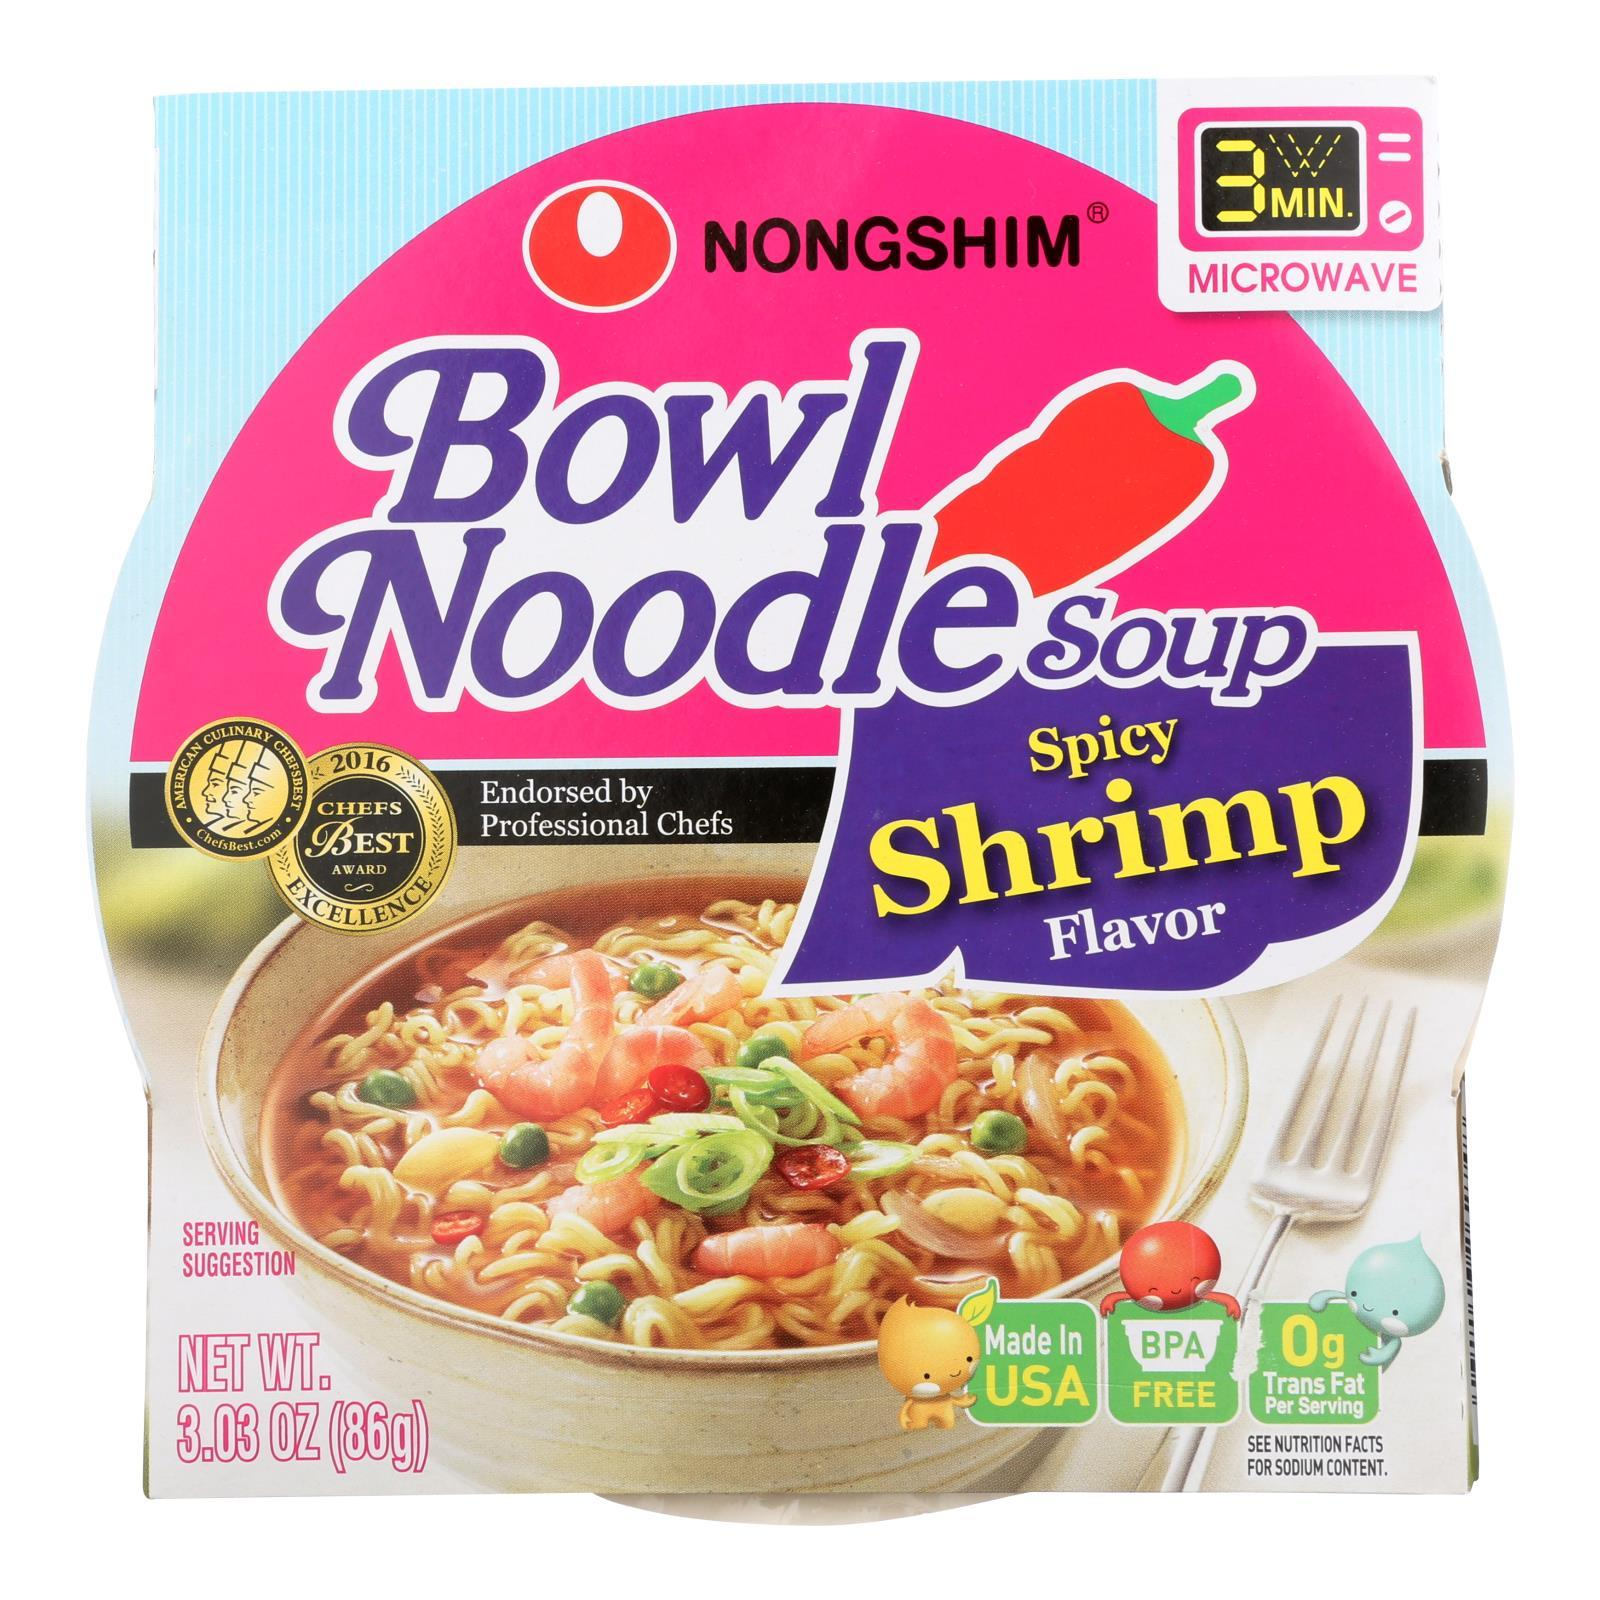 Nong Shim Spicy Shrimp Bowl - Noodle Soup - Case Of 12 - 3.03 Oz. - BeeGreen